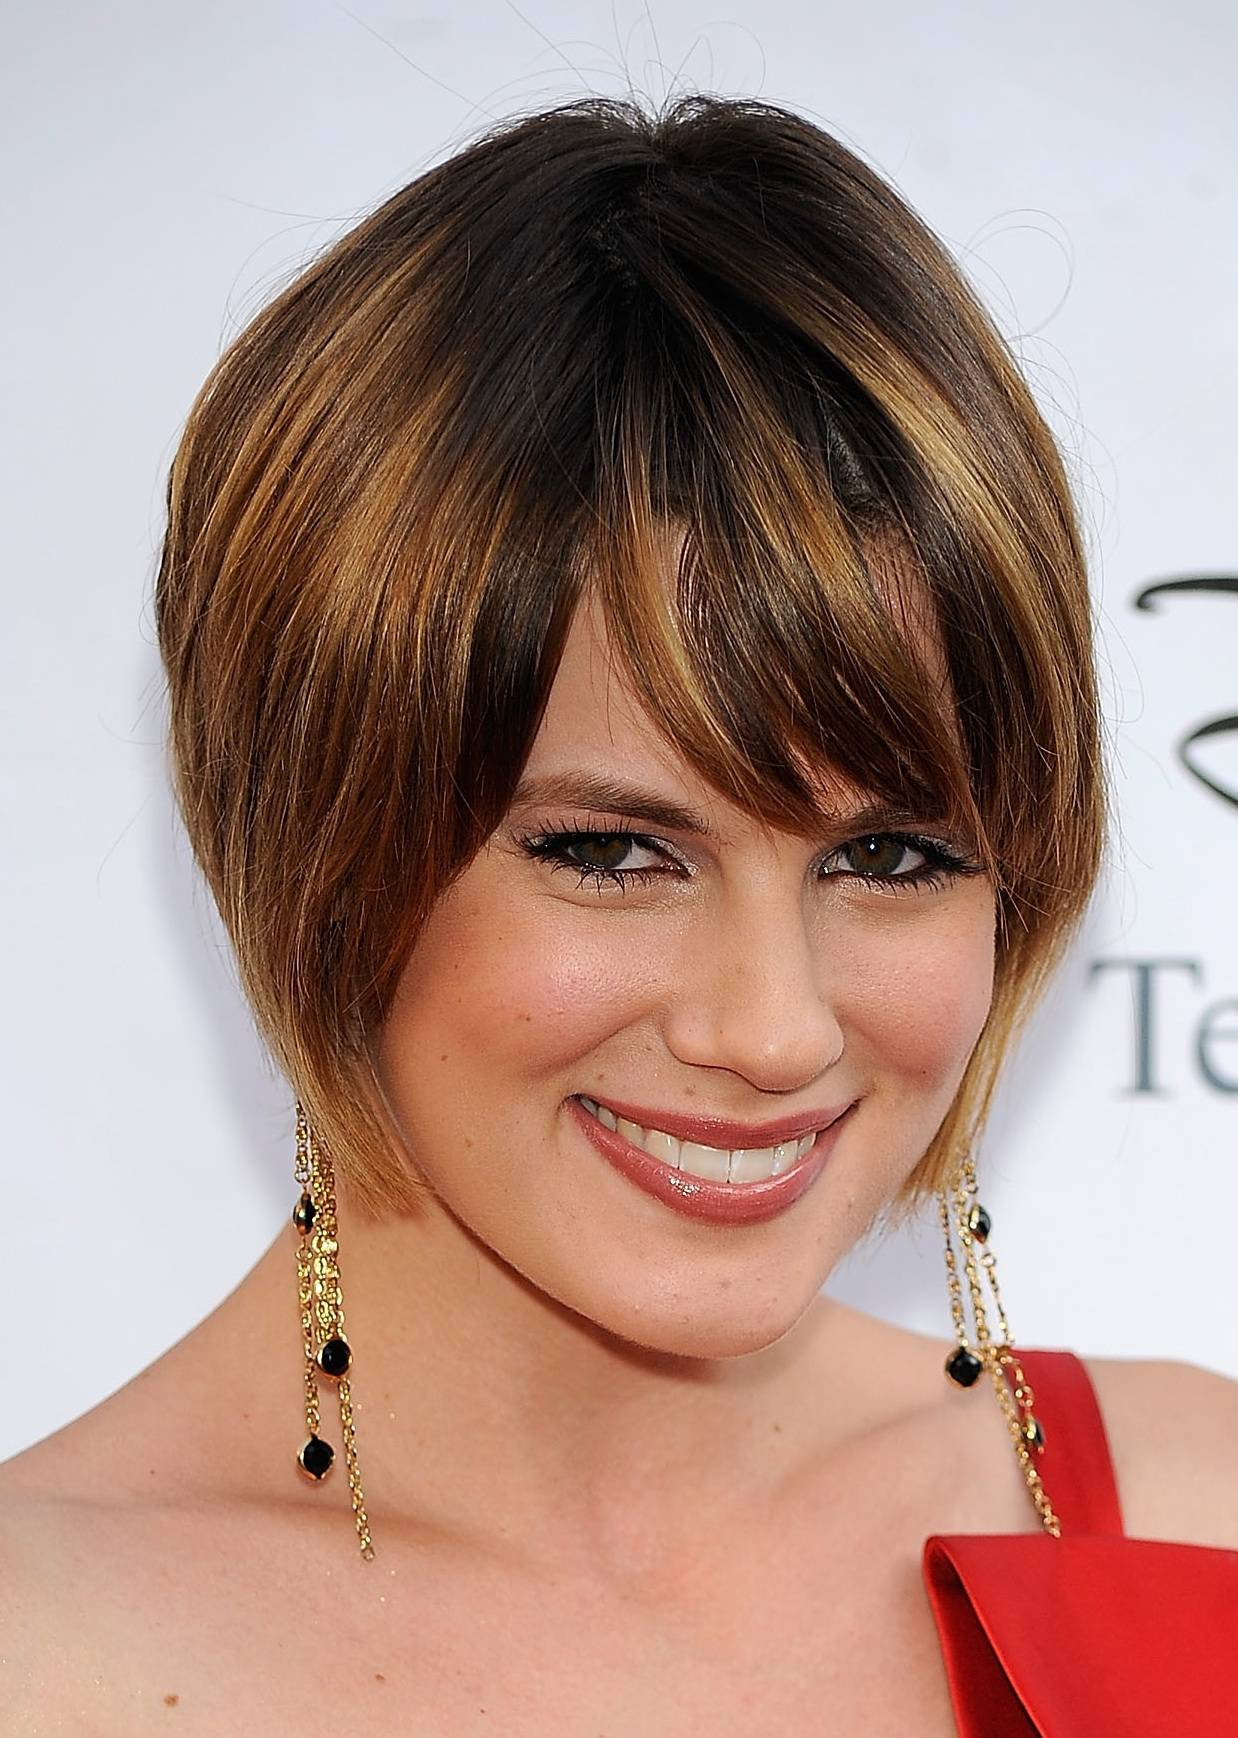 24 Cute Short Hairstyles (with Bangs)